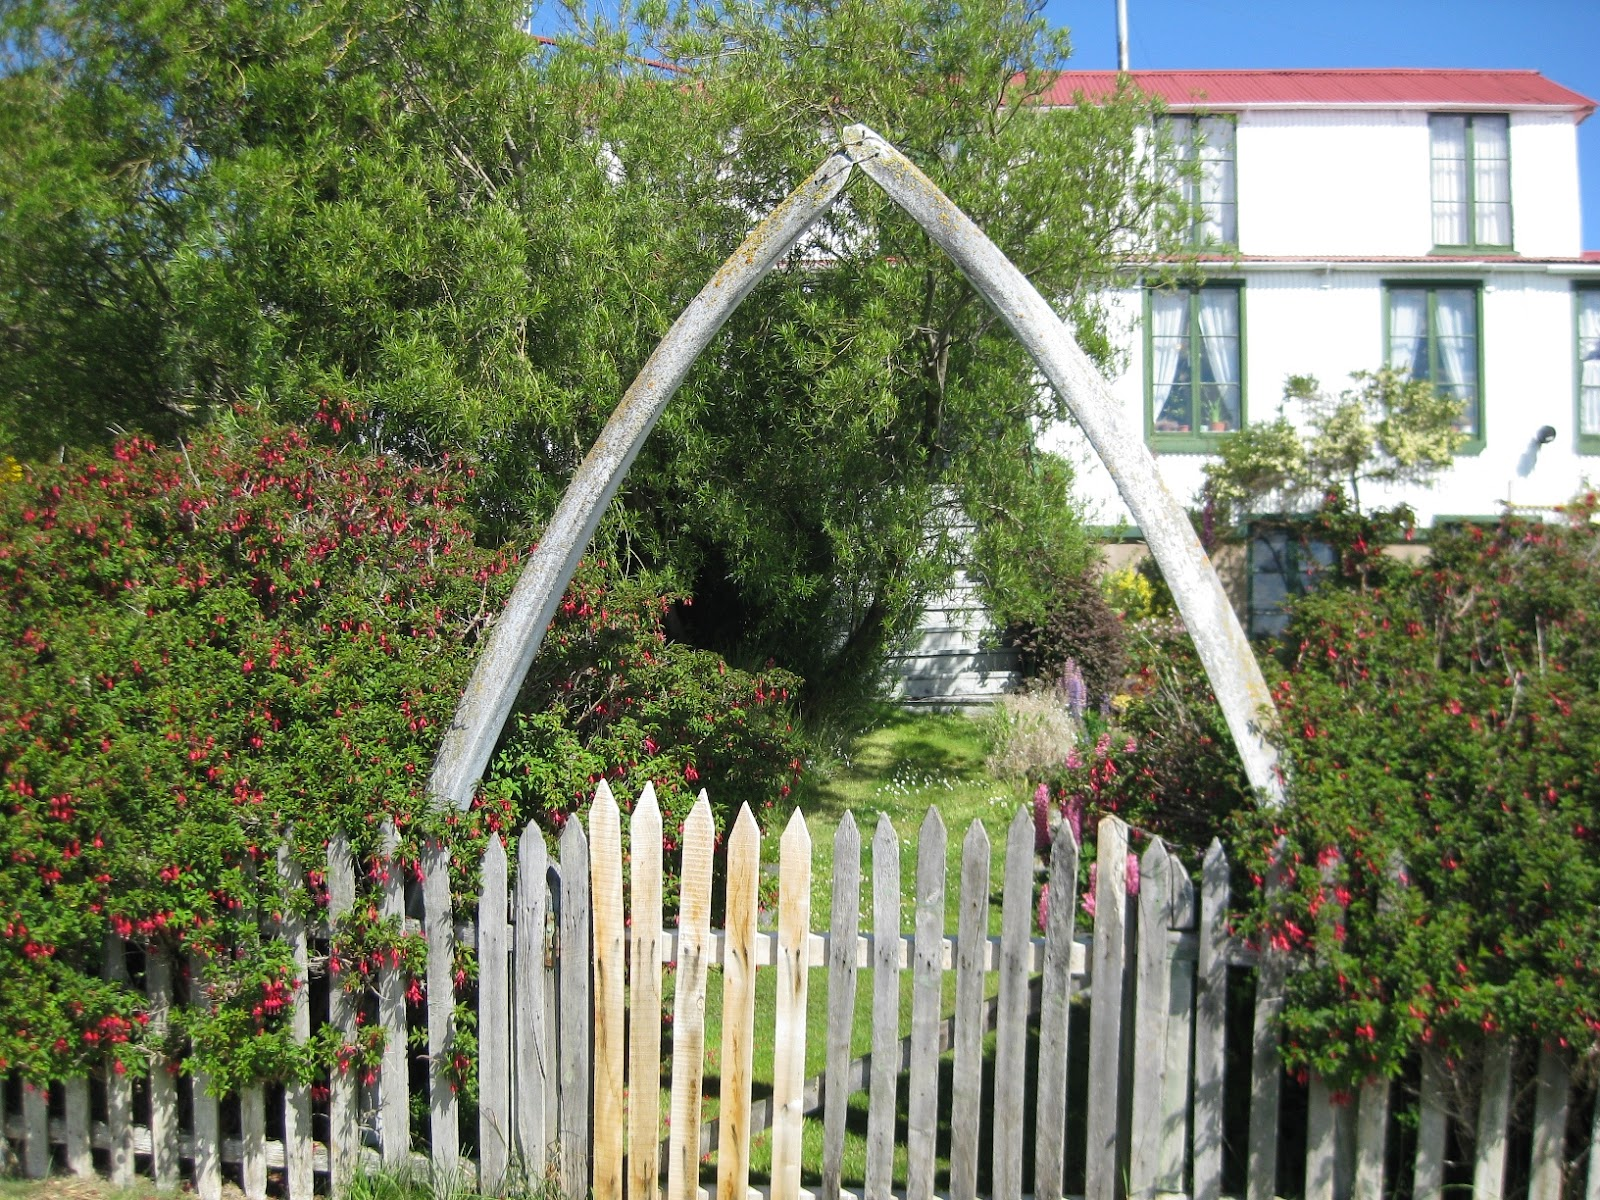 I want whalebones over my gate